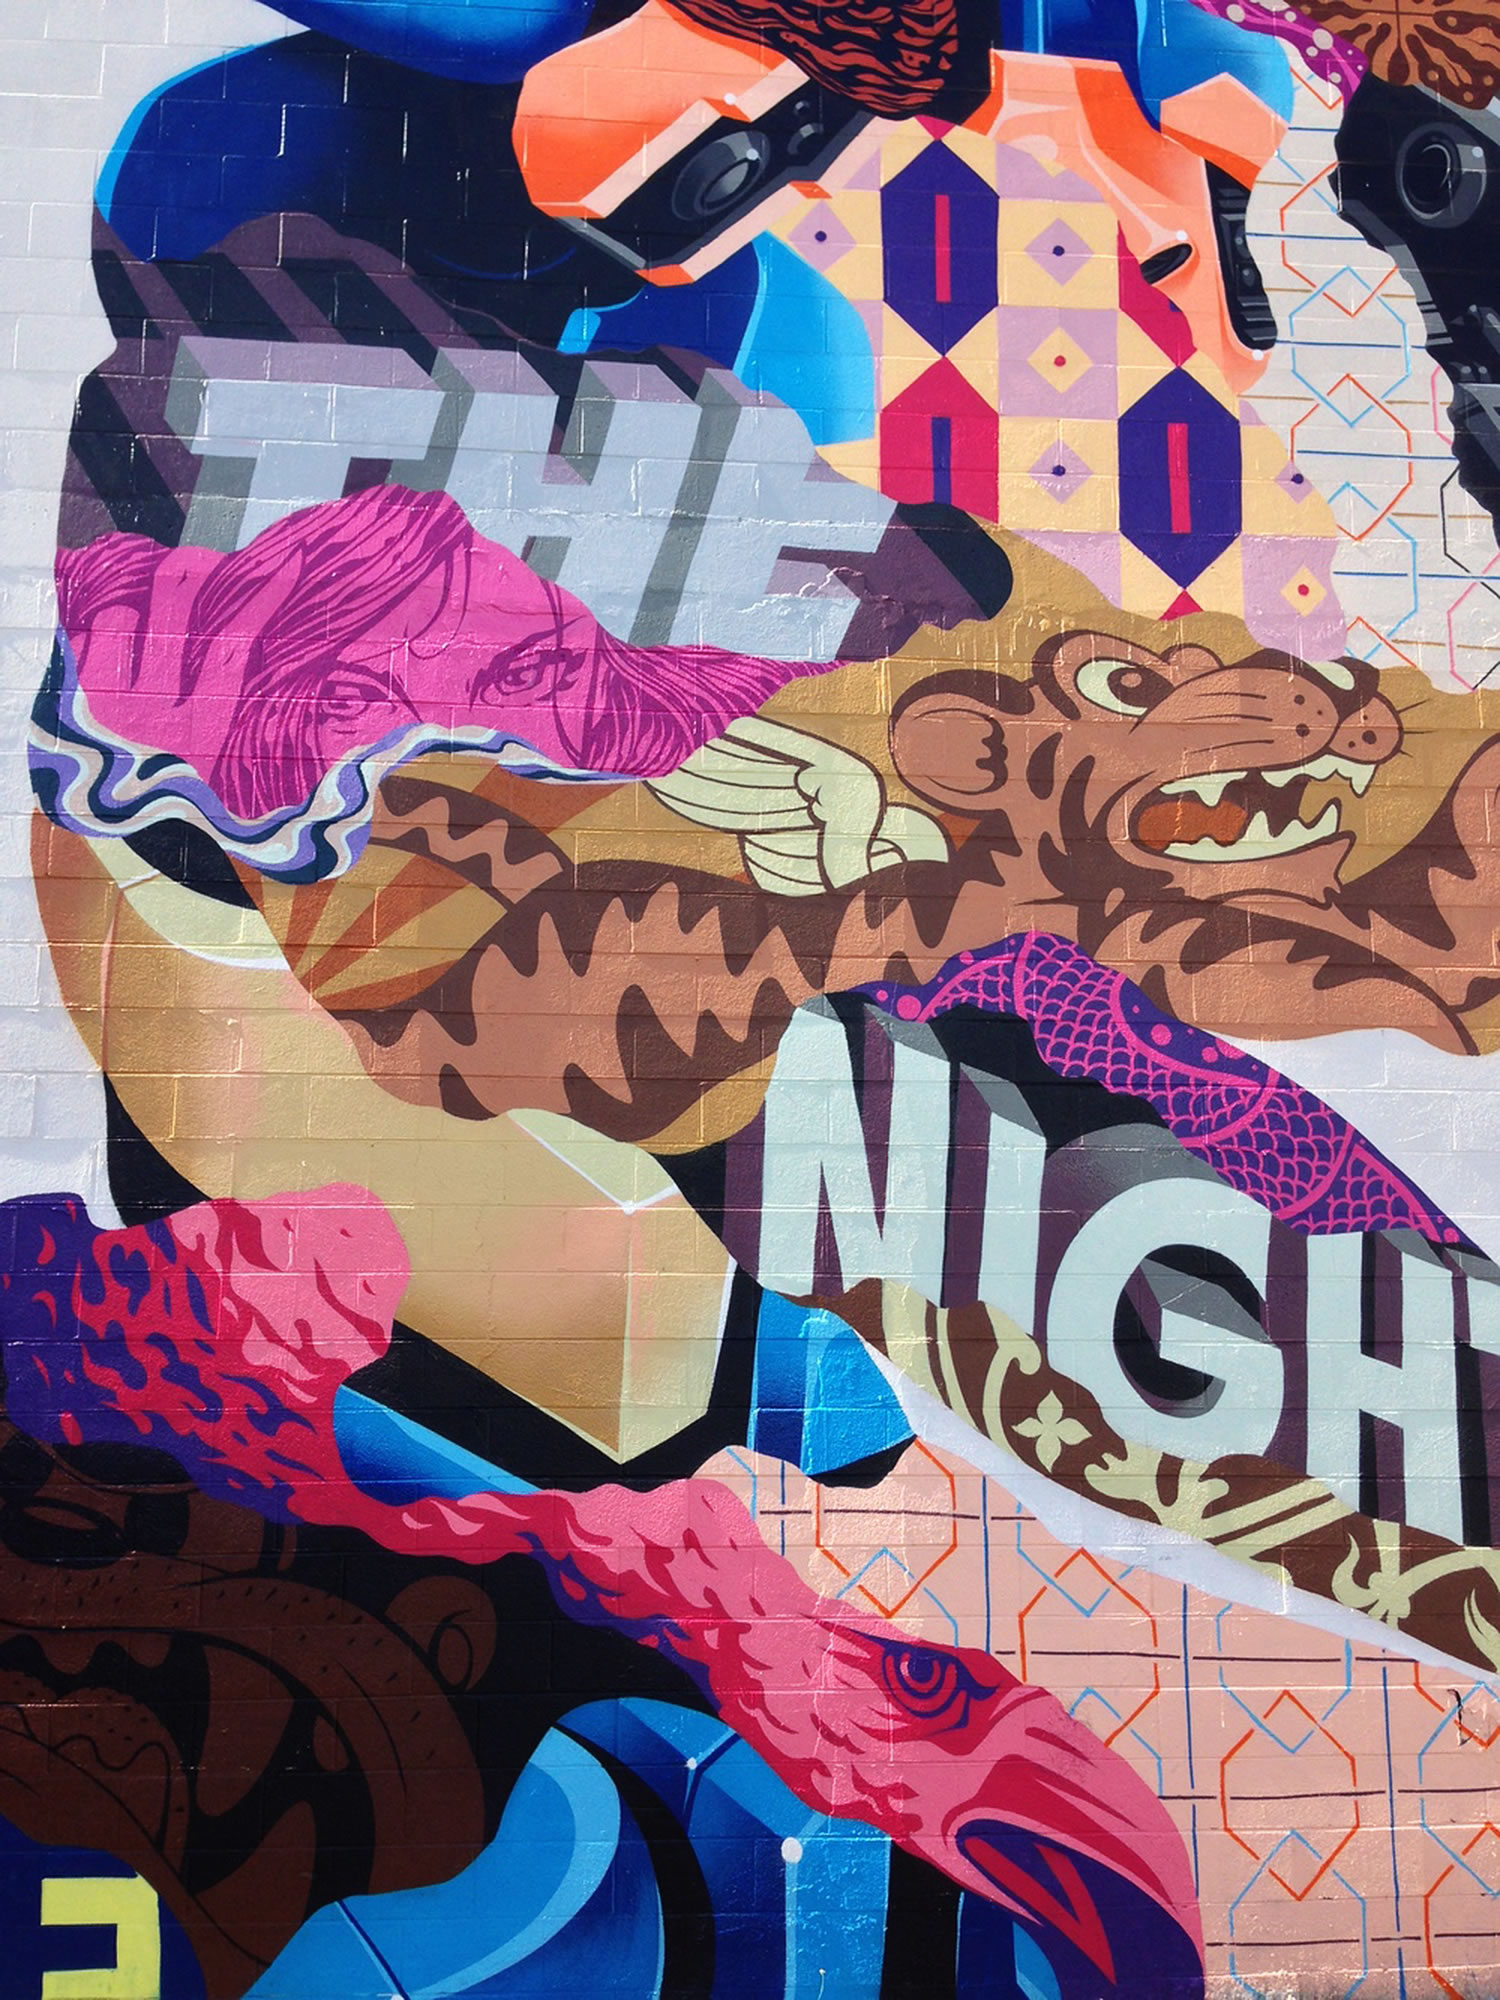 close-up of cartoon graffiti by Tristan Eaton